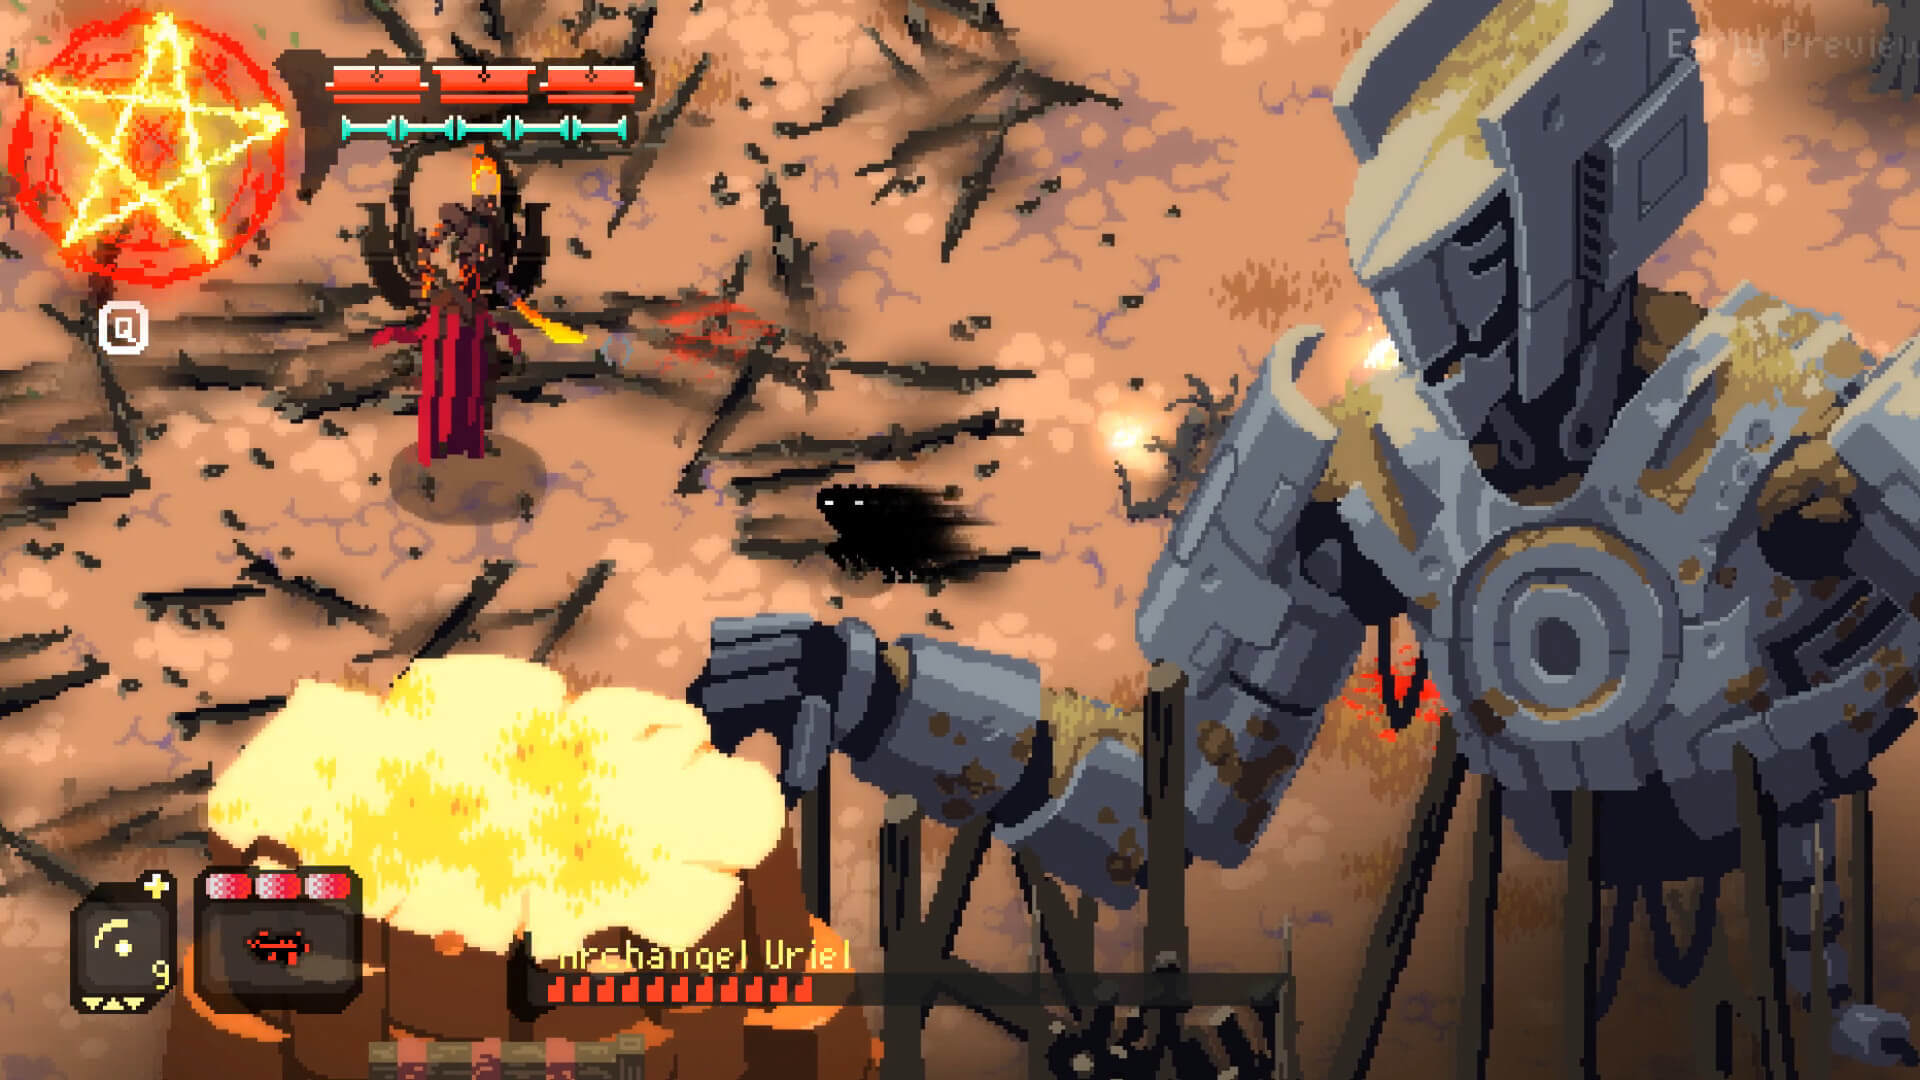 Fallen Angel Releases on PC Through Steam Today